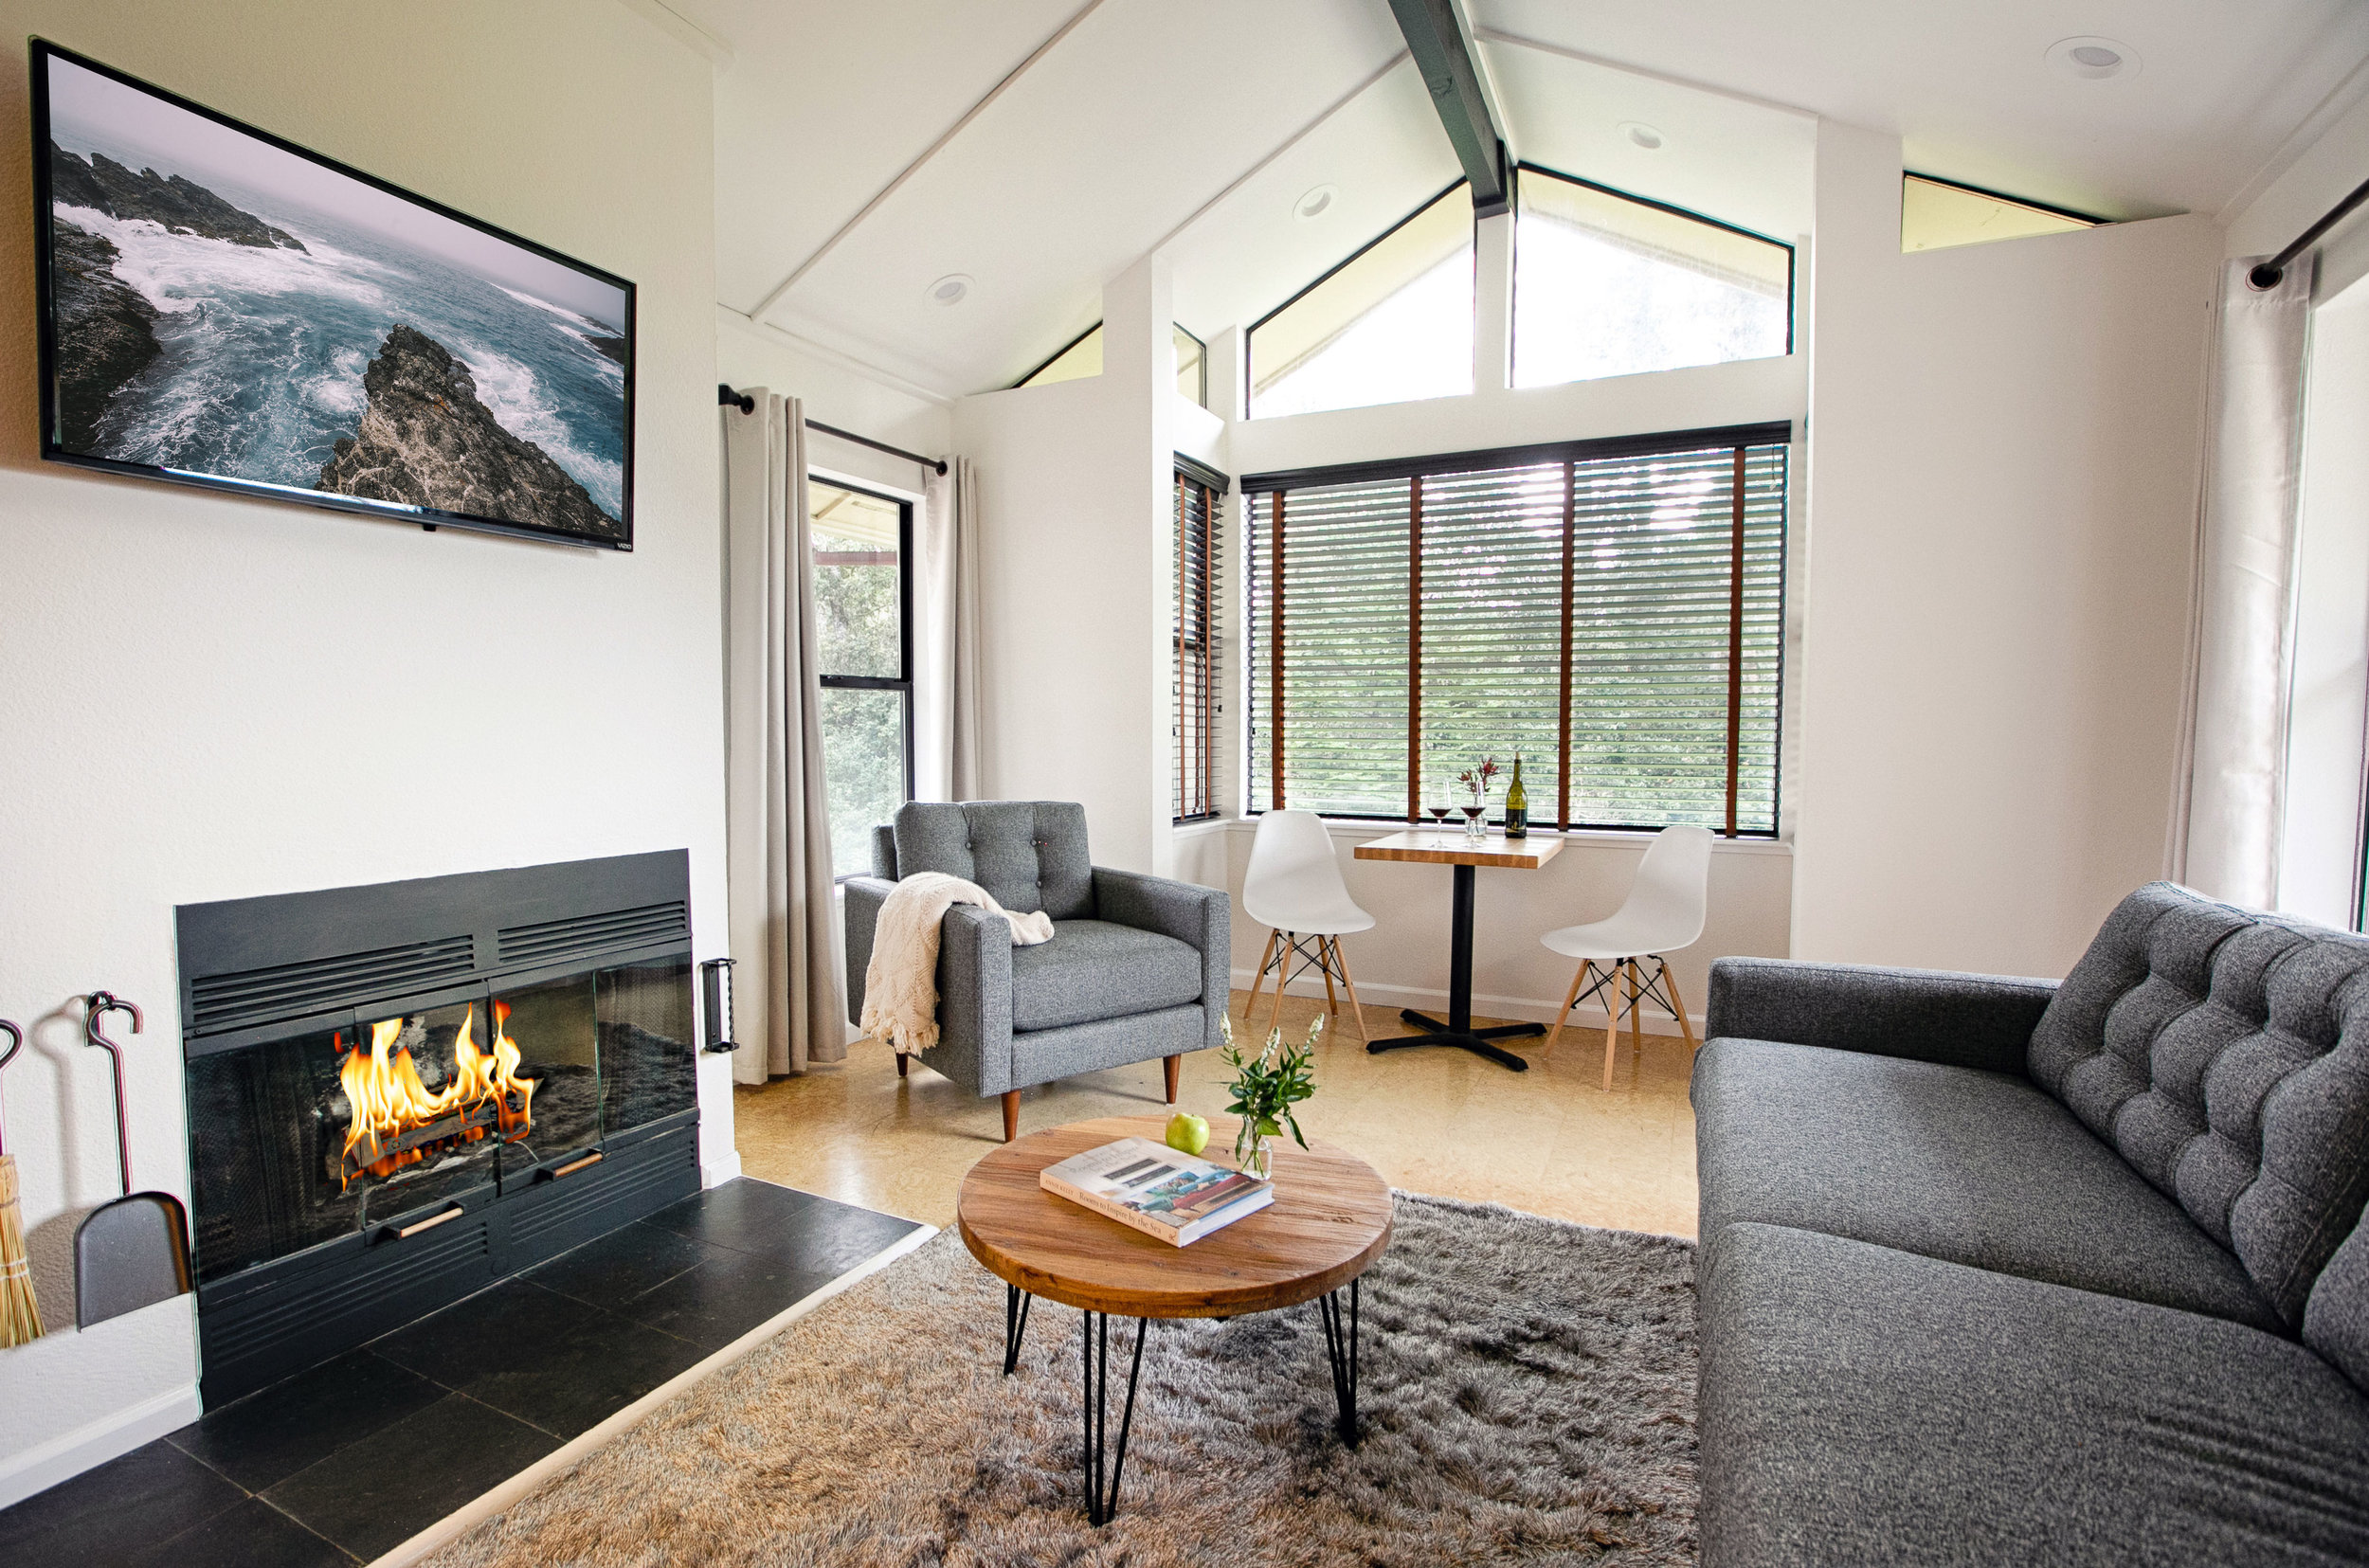 The sitting area in room 203 at The Lodge has modern furnishings with sofa, chair, and table with side chairs, as well as wood burning fire and flat screen TV.